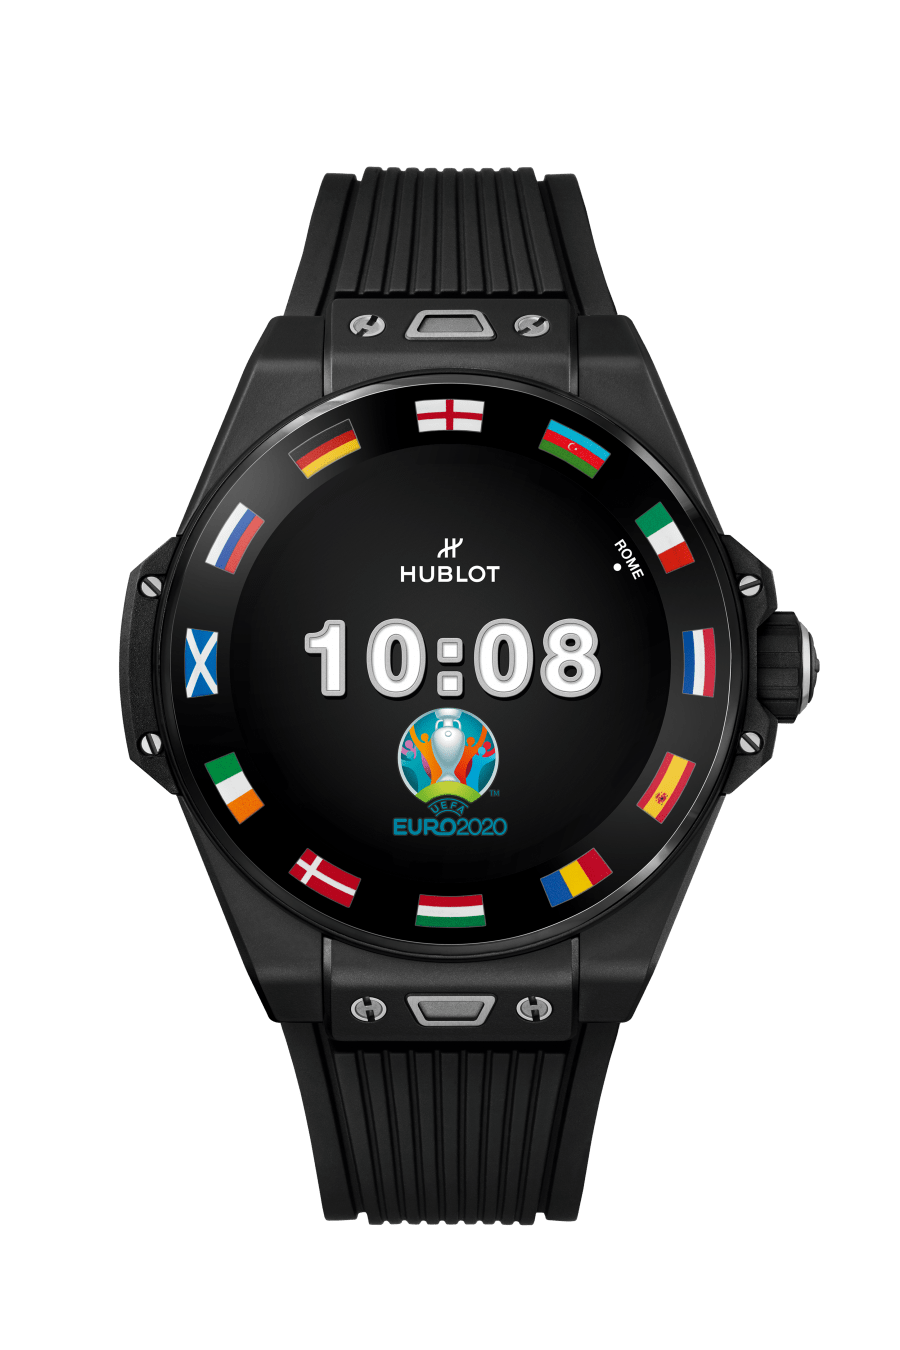 Extra time: Which Euro 2020 manager has the best watch?